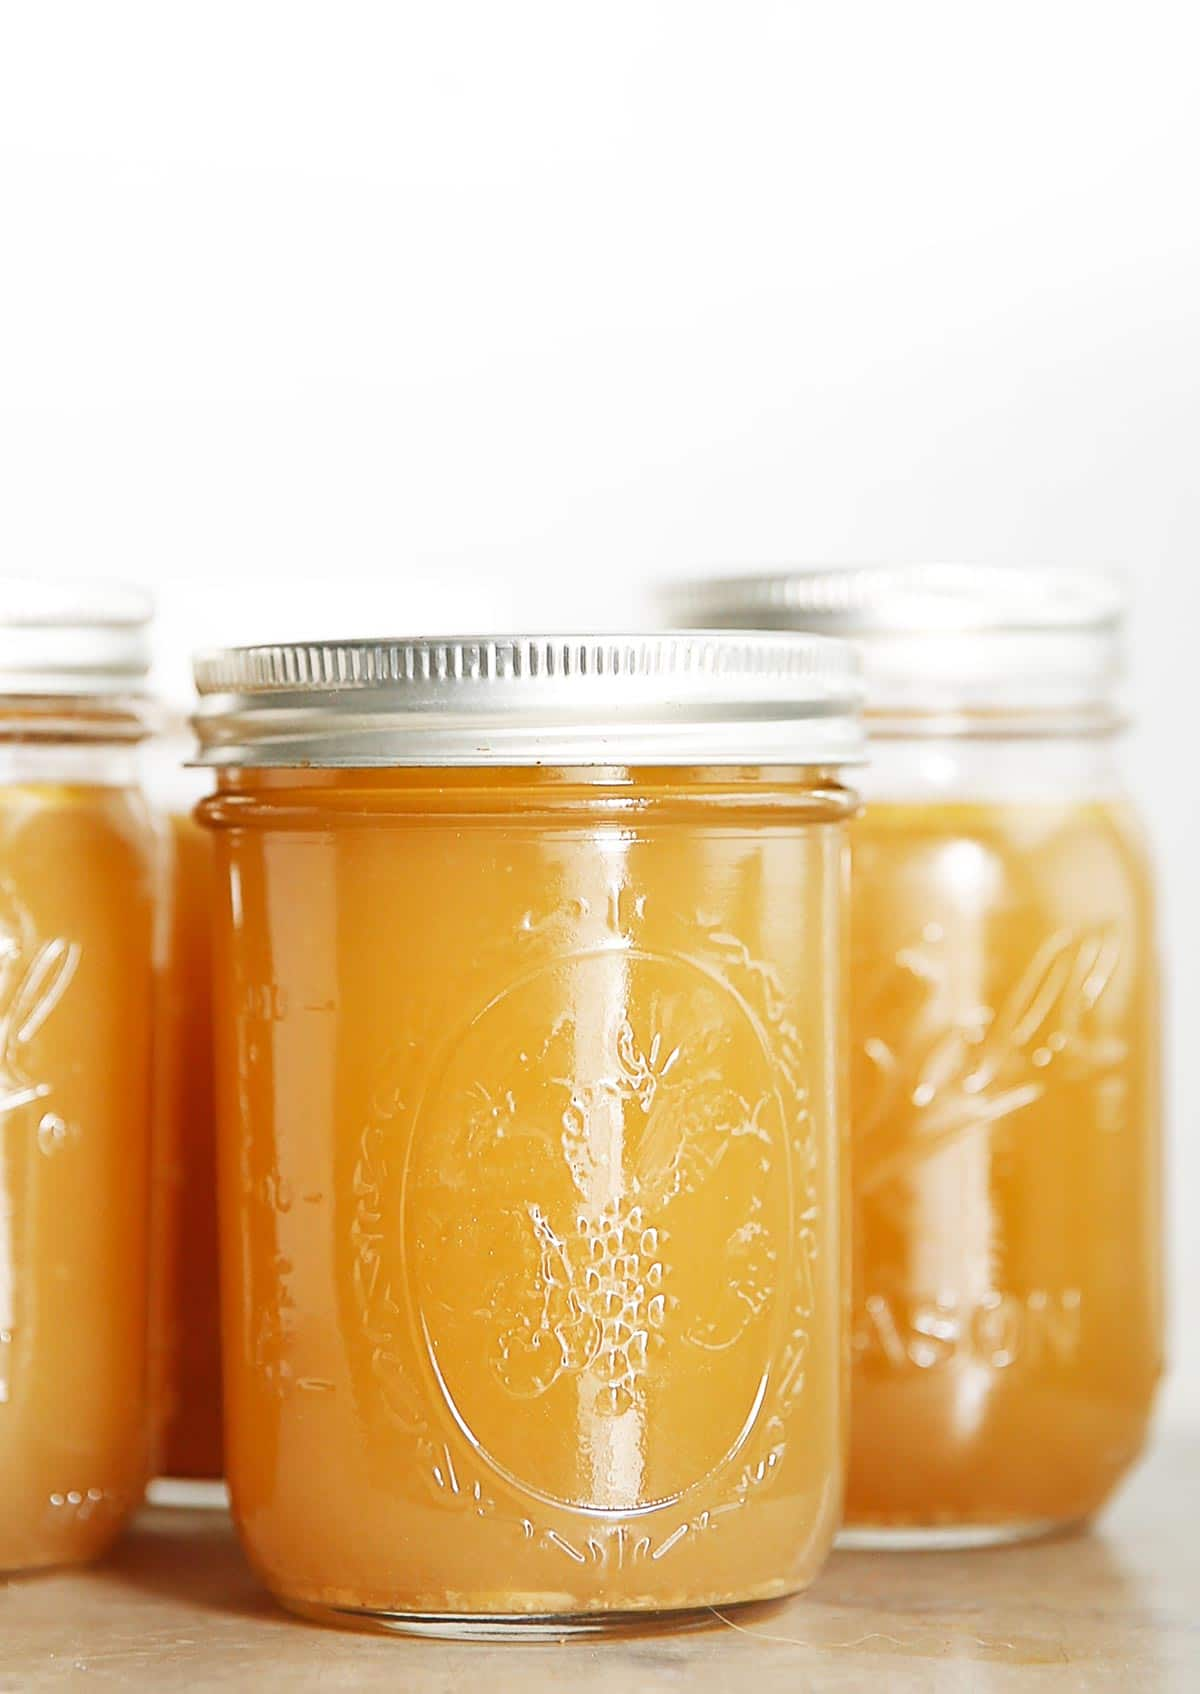 Homemade chicken stock in jars.